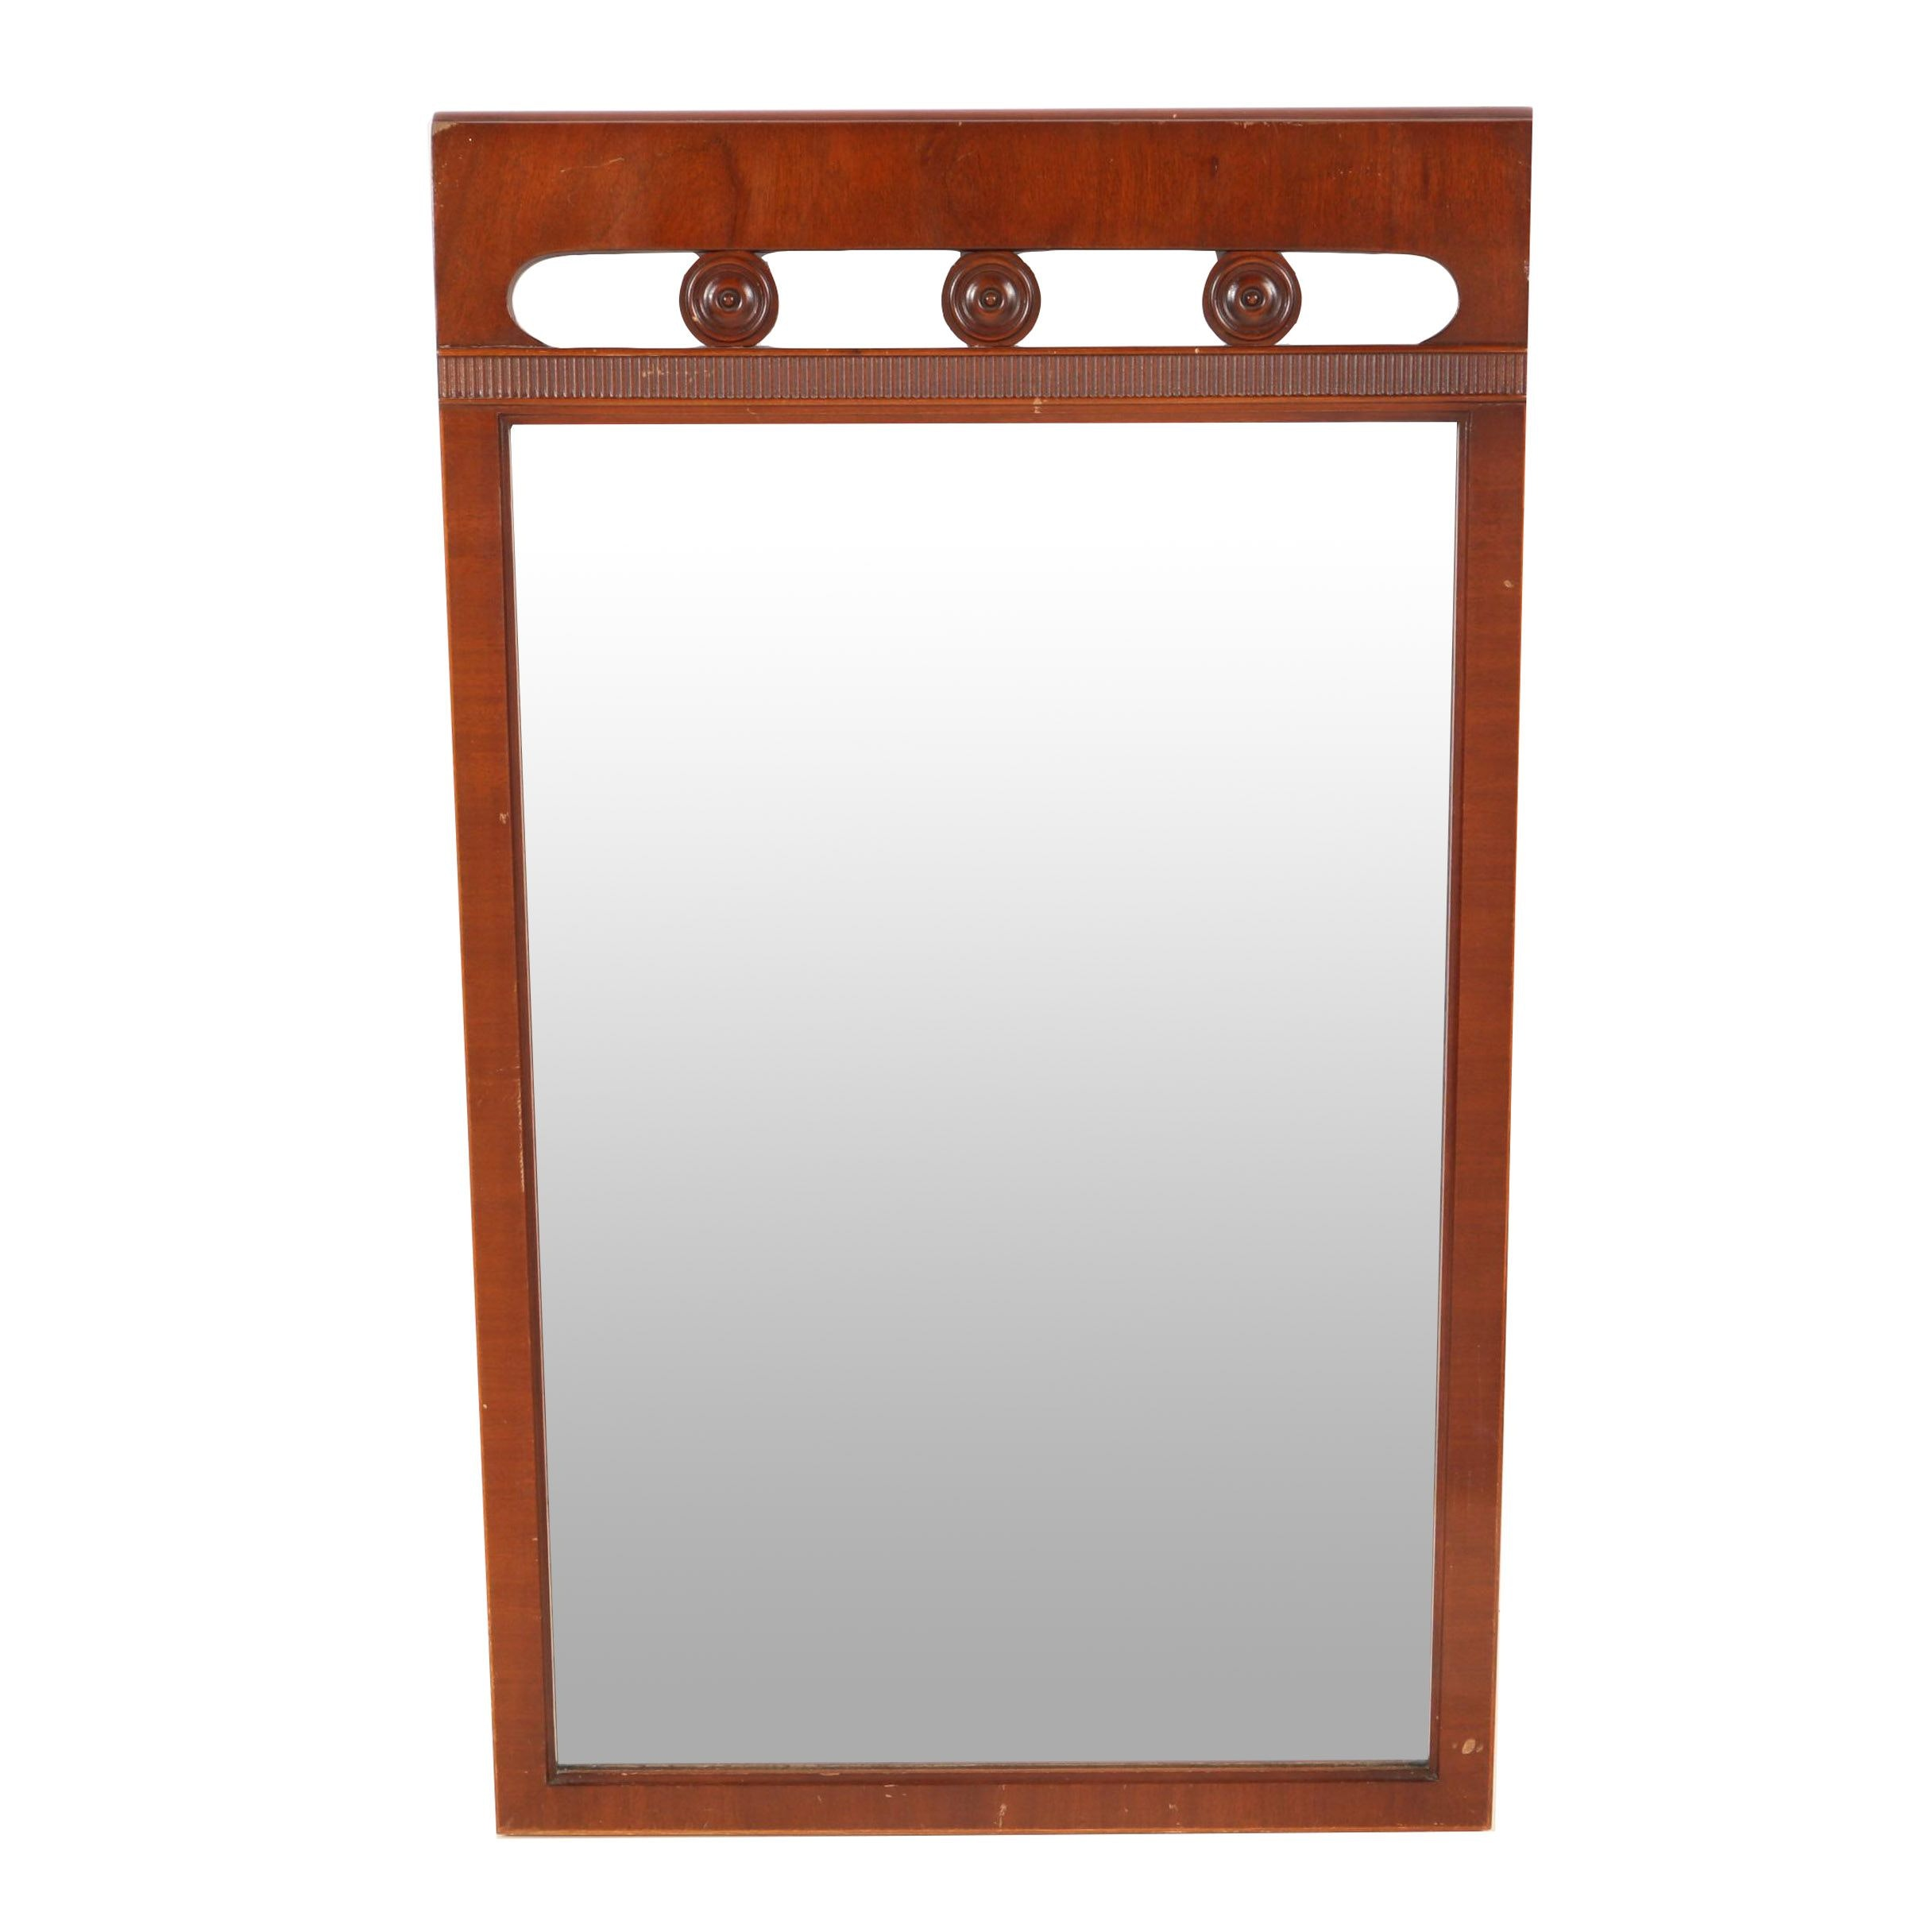 Carved Wooden Framed Wall Mirror